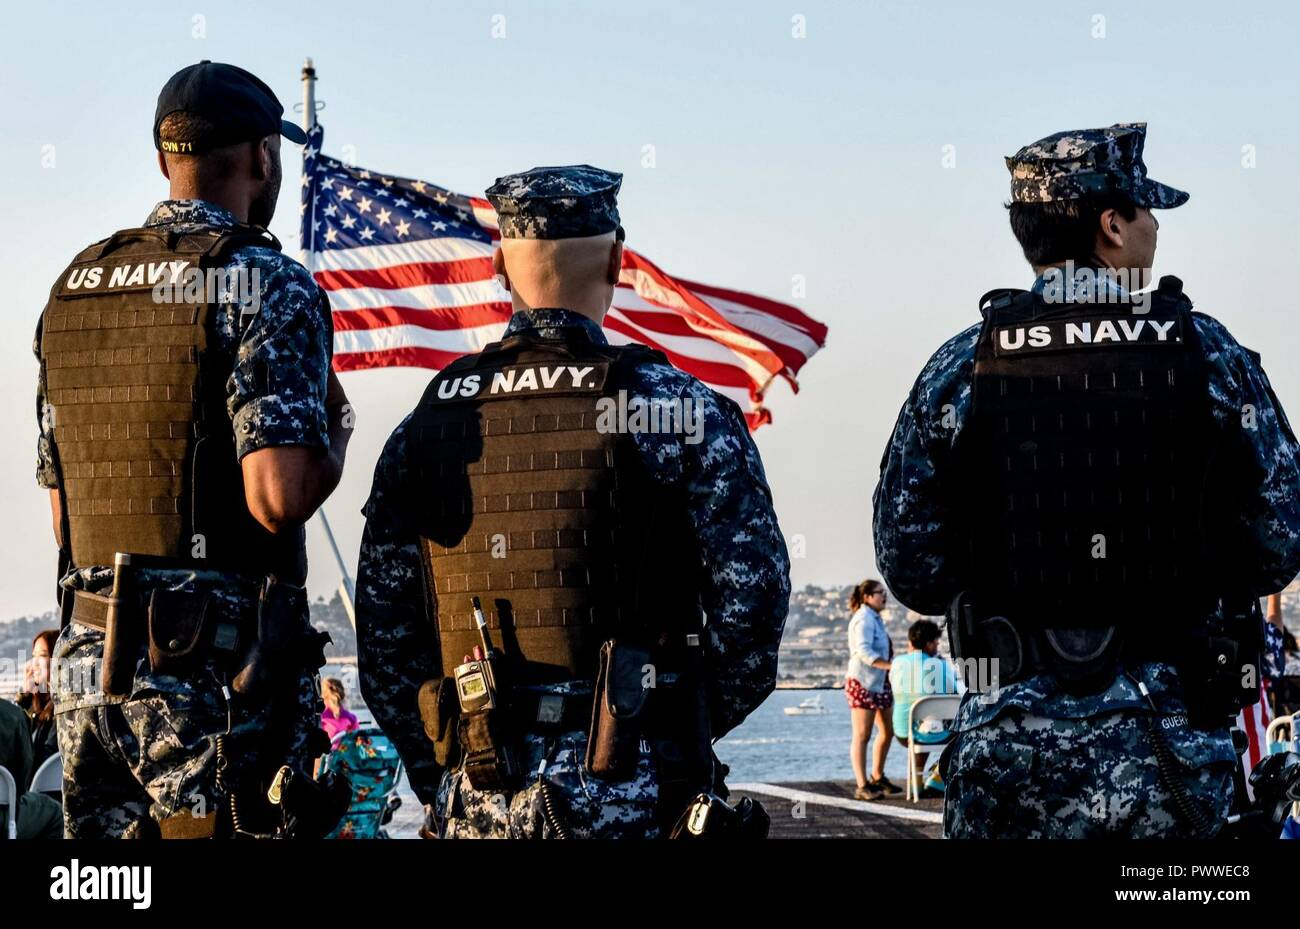 SAN DIEGO (July 4, 2017) Sailors provide security as family